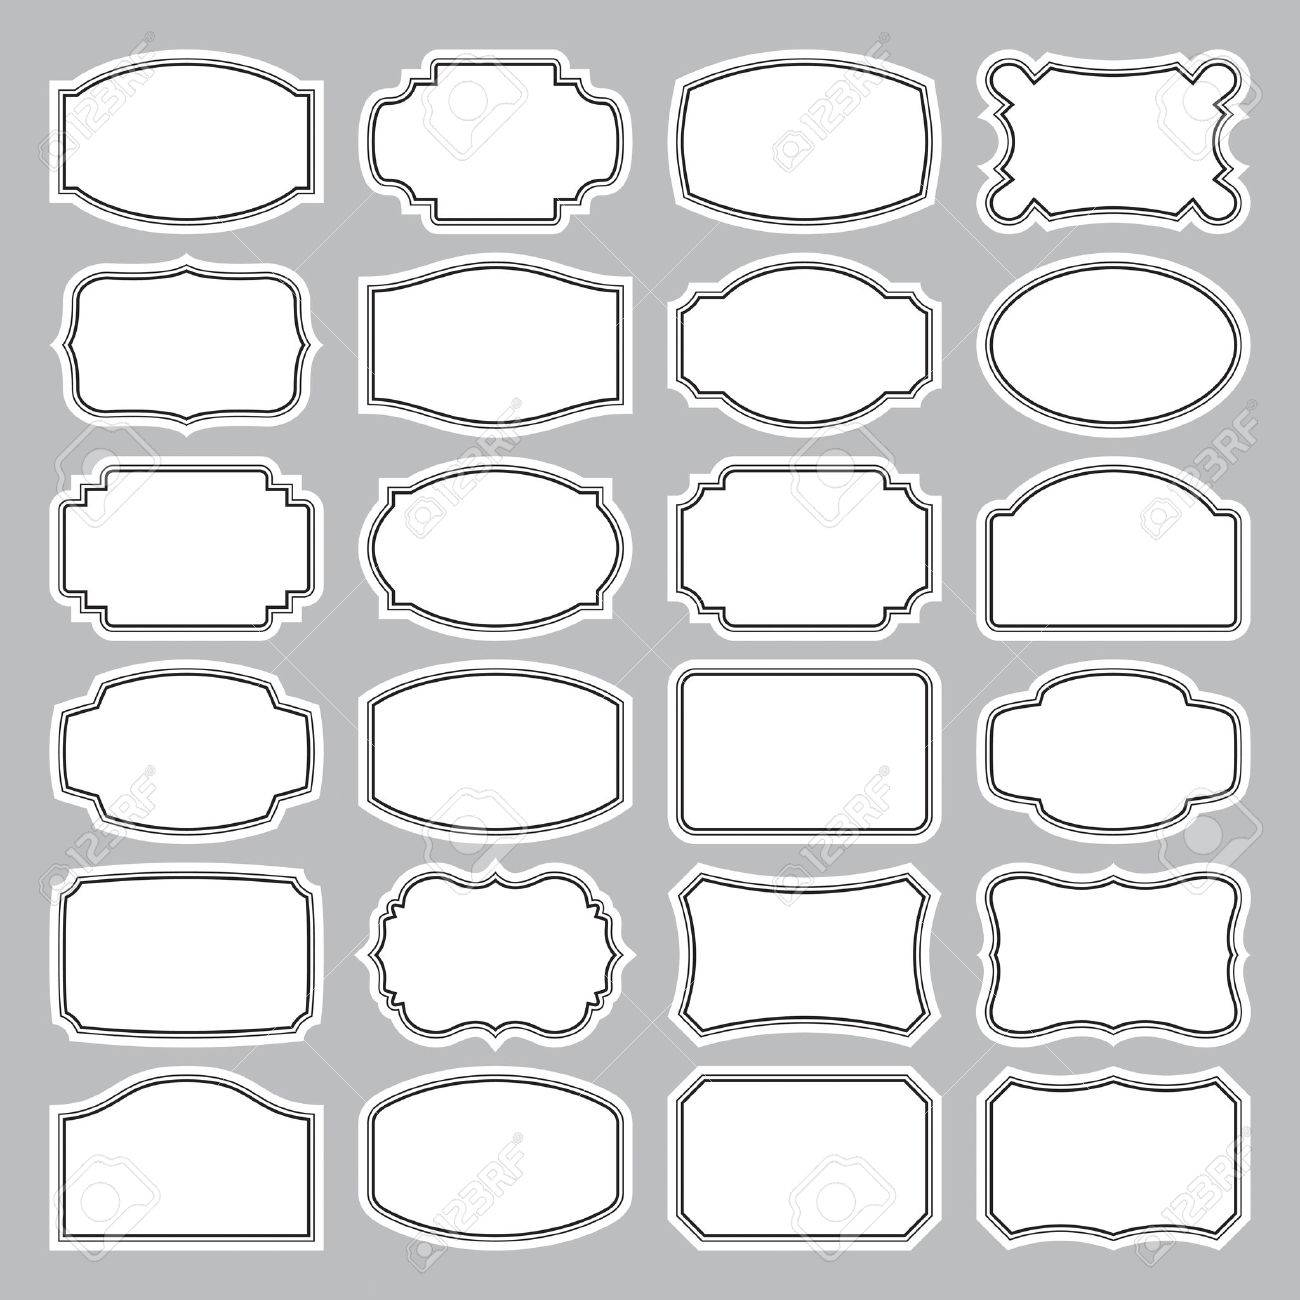 24 Blank Labels Set Royalty Free Cliparts Vectors And – Blank Label Template